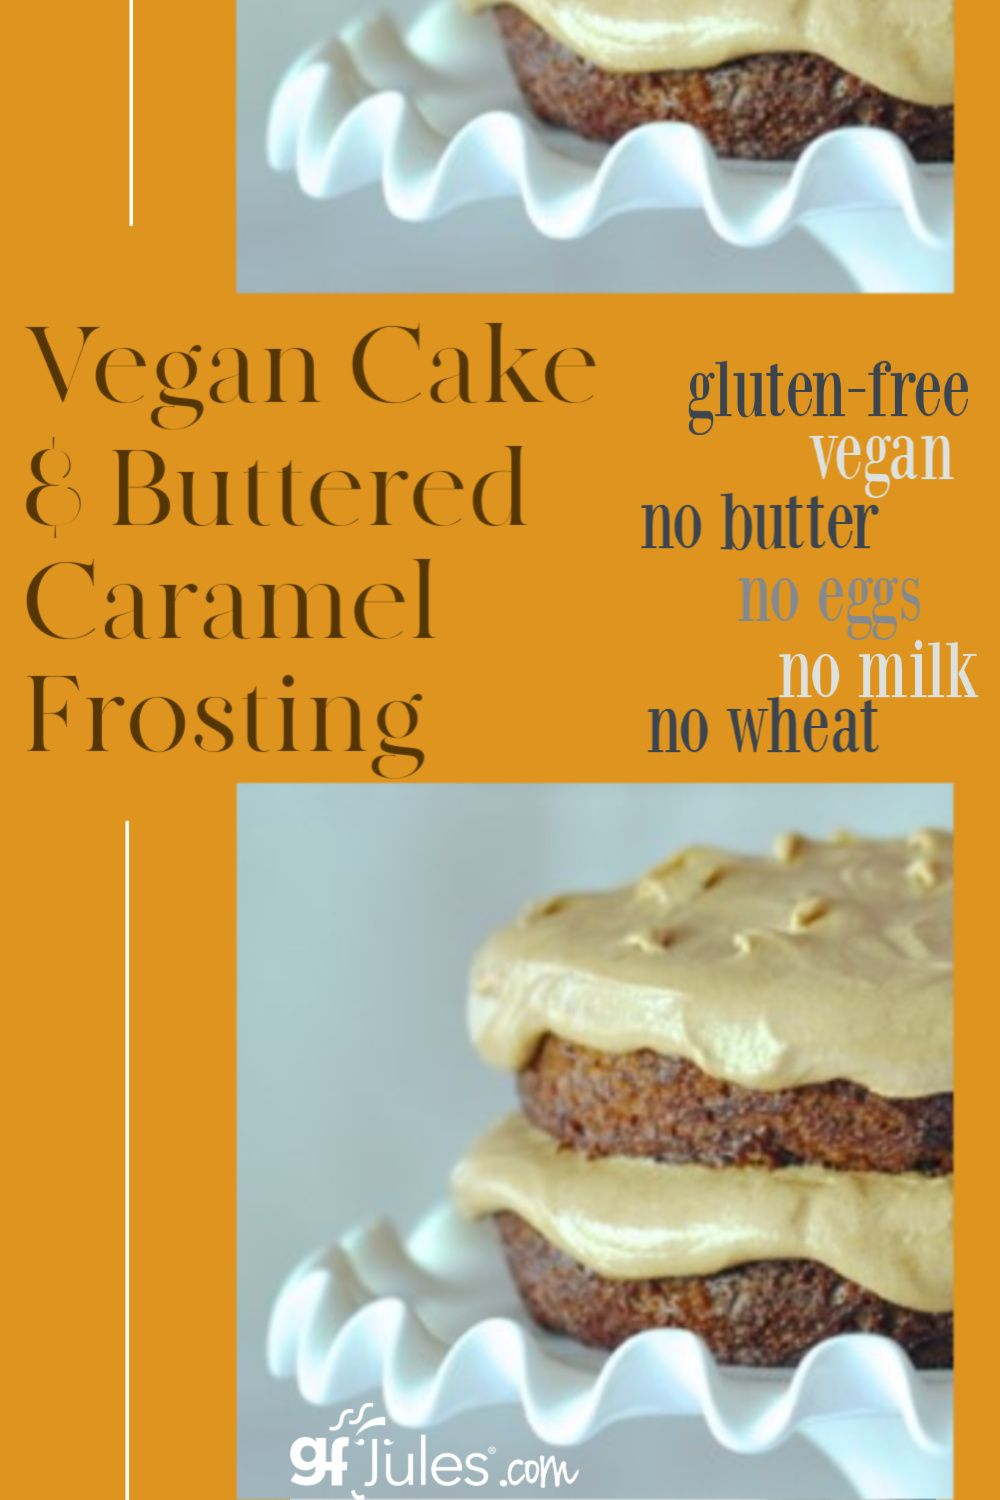 Gluten Free Apple Butter Cake It S Vegan Easy Made W Gfjules Flour In 2020 Apple Butter Cake Vegan Caramel Apple Butter